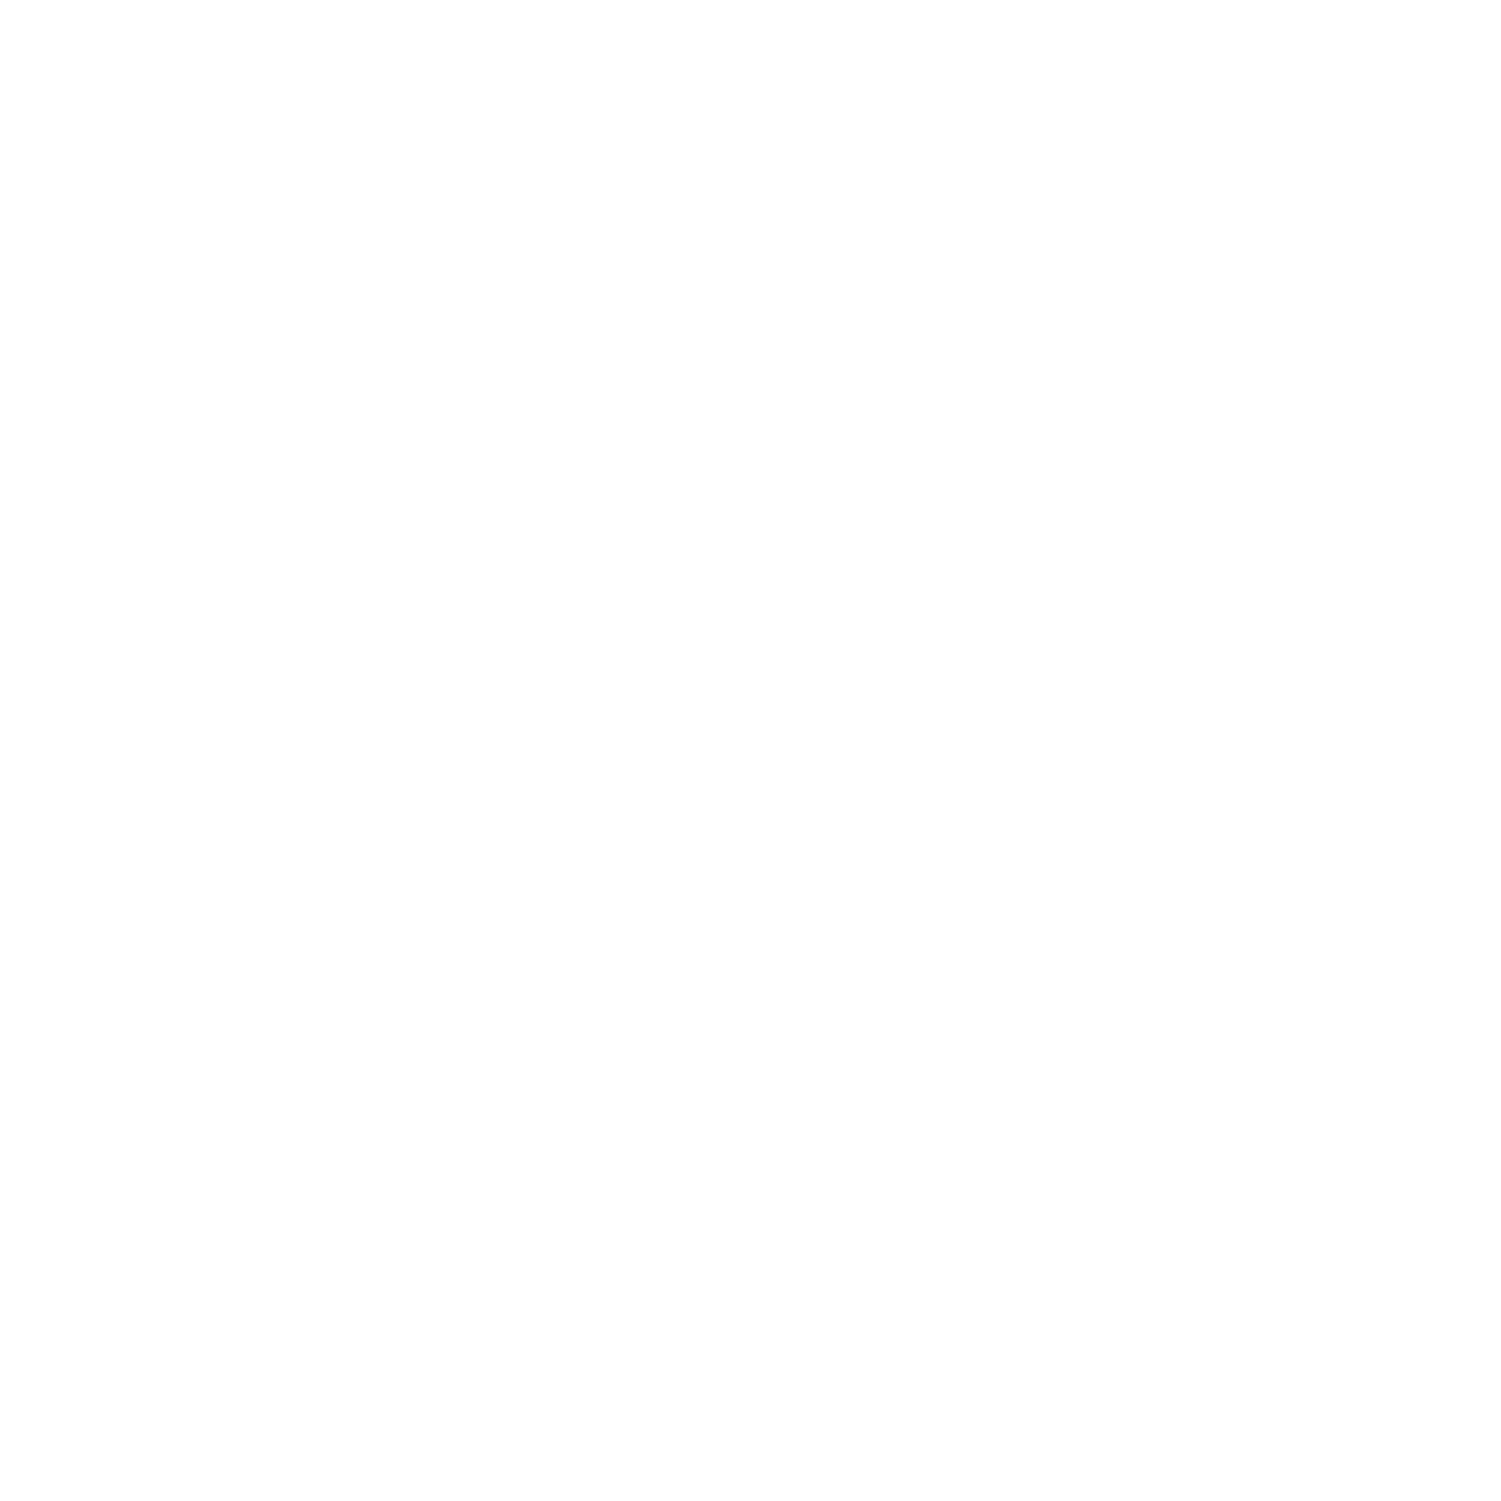 logo_et-collect.png